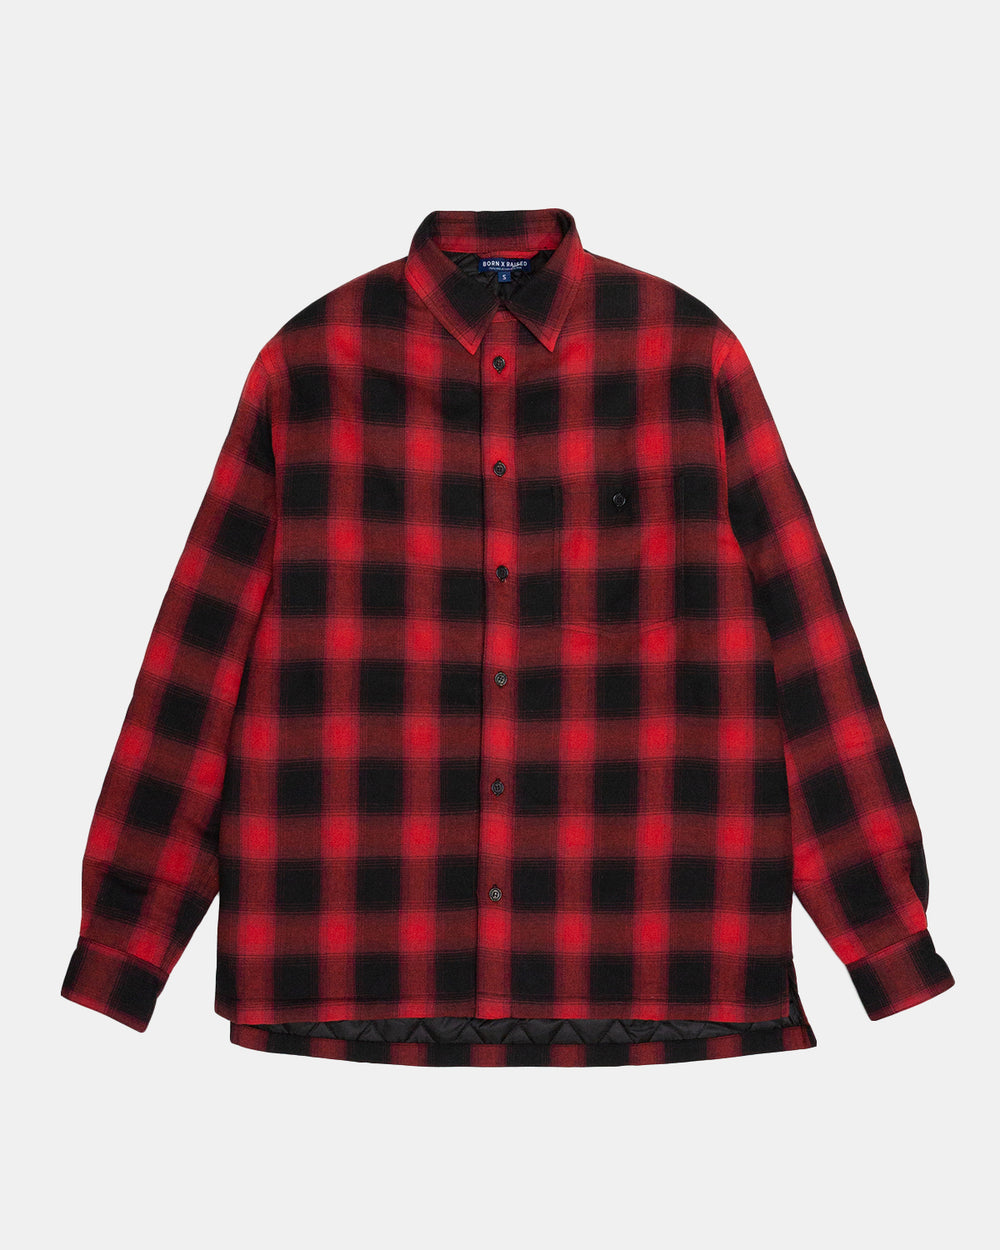 Born x Raised - Beowulf Shirt Jacket (Red)